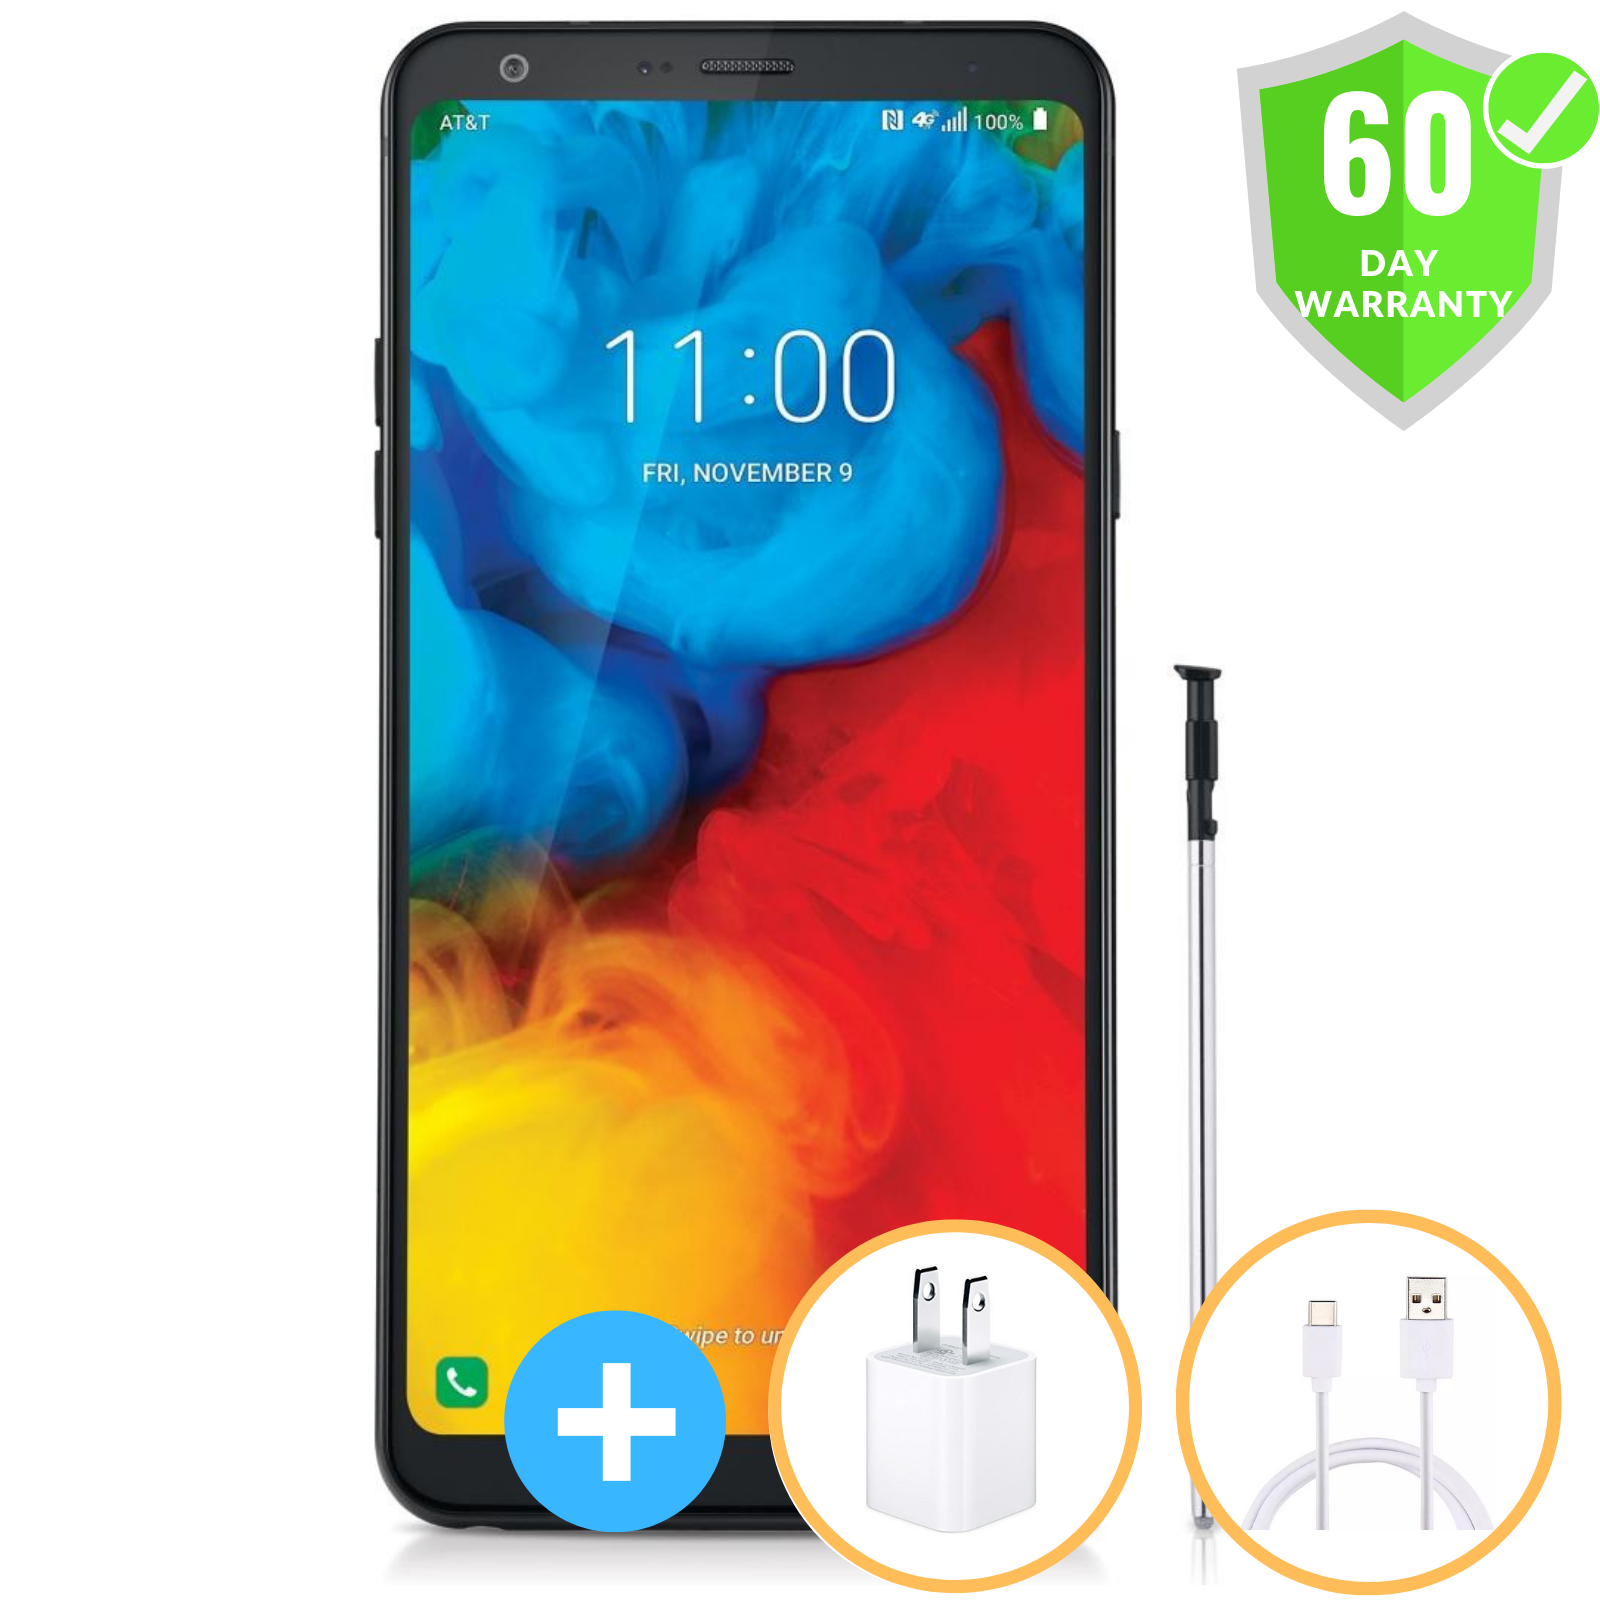 Android Phone - LG Stylo 4 Plus Q710WA | GSM Factory Unlocked | ATT T-Mobile | 32GB | Excellent